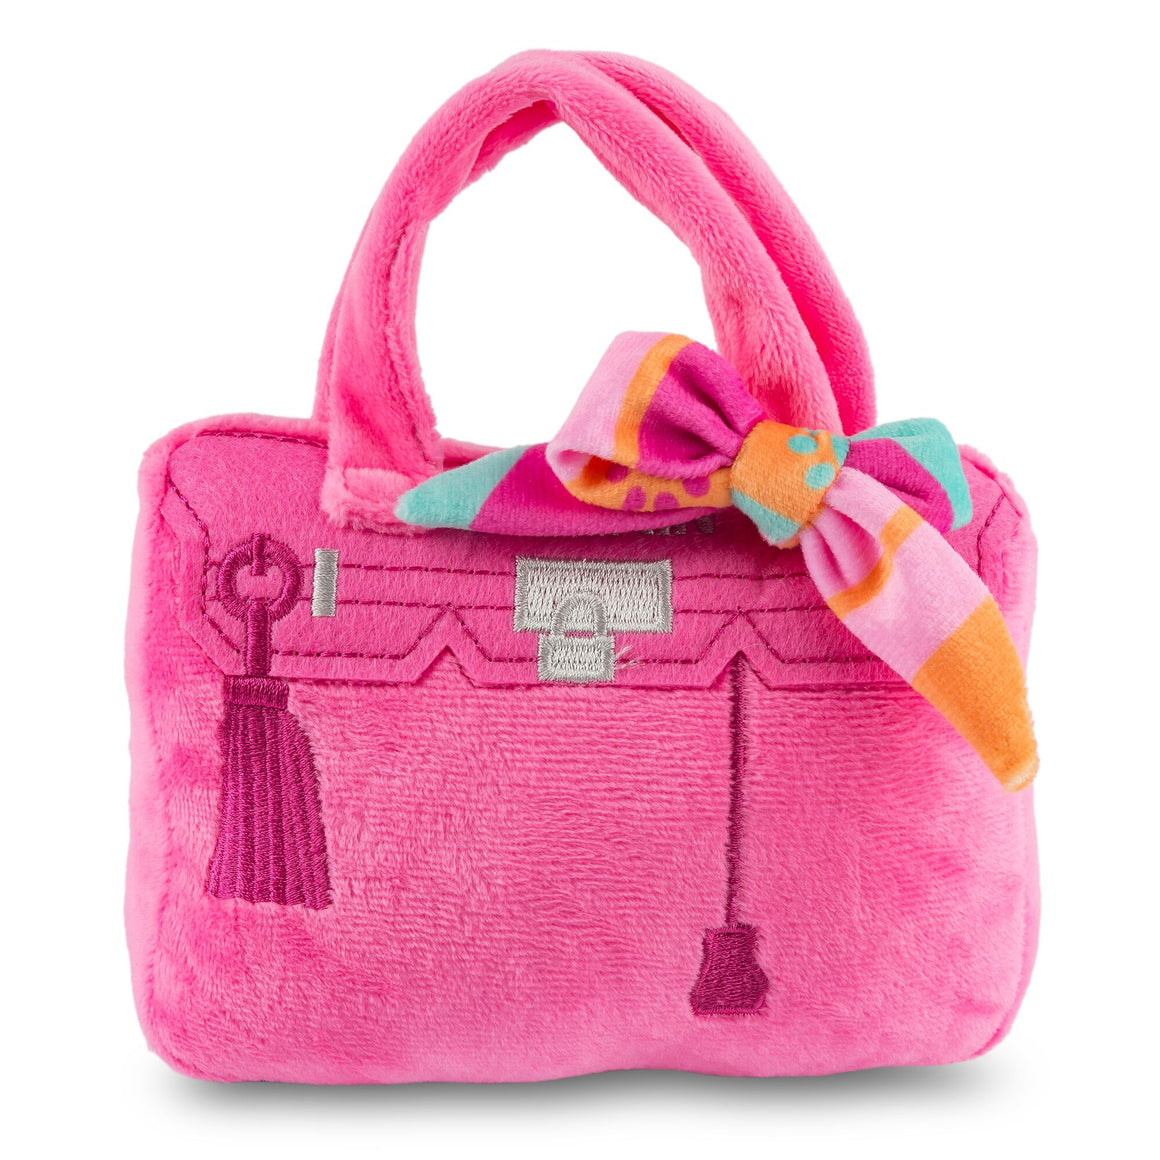 Barkin Bag Toy Pink